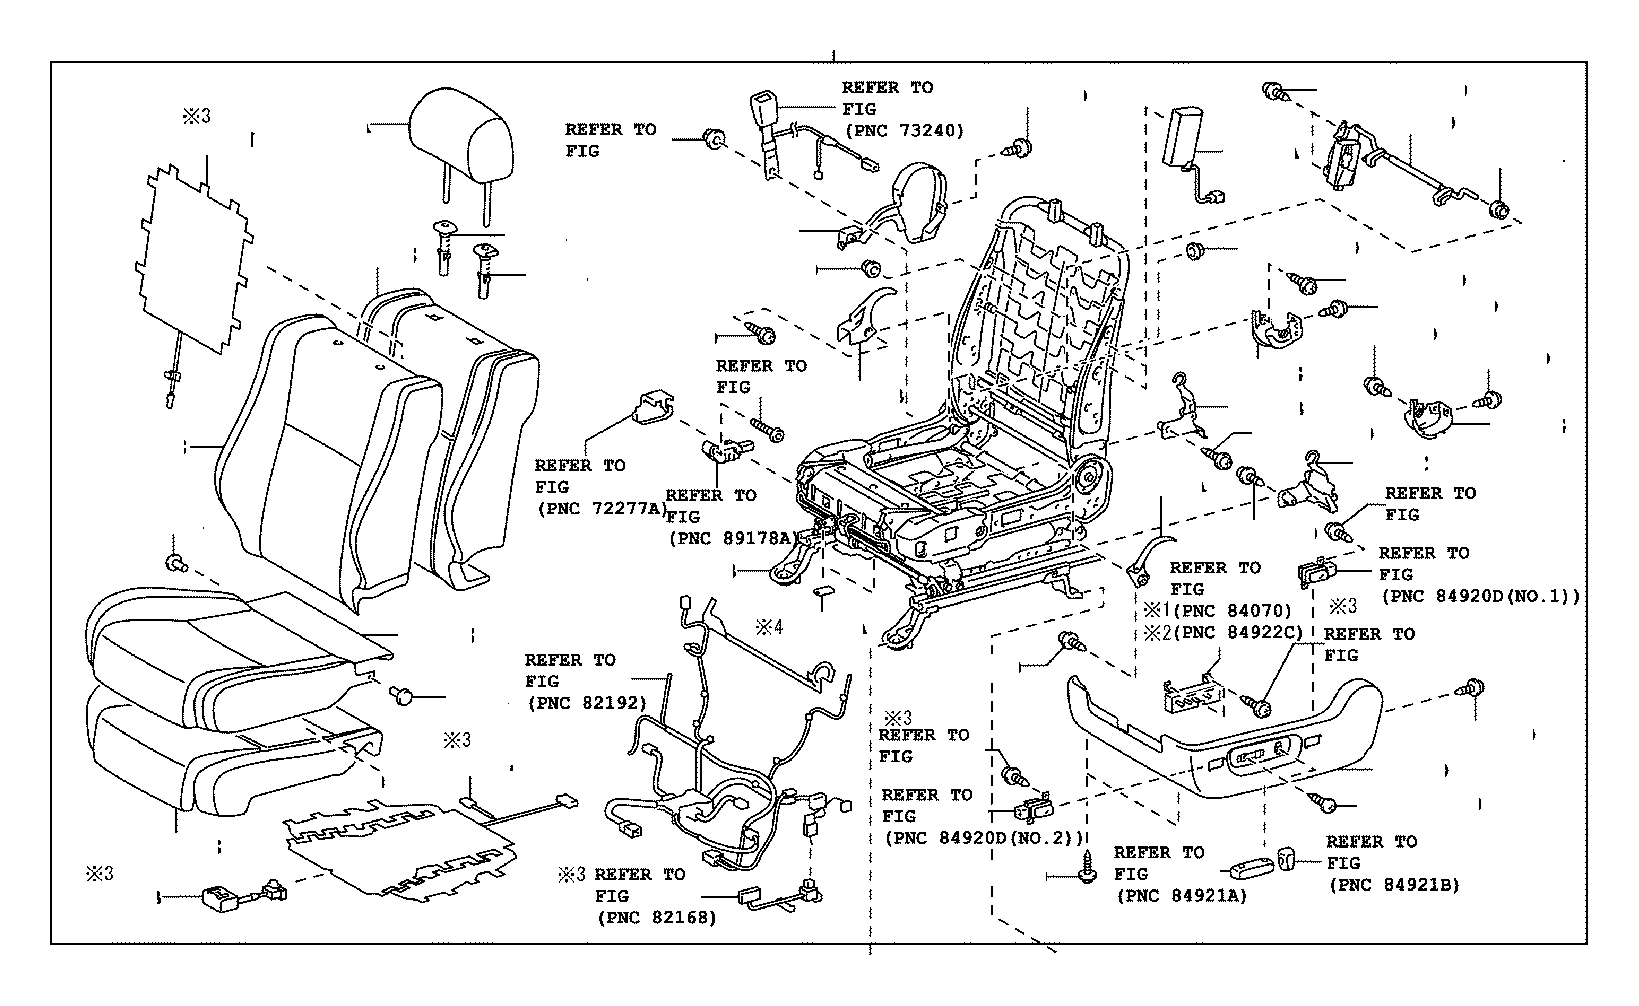 Toyota Tundra Frame assembly, front seat with adjuster